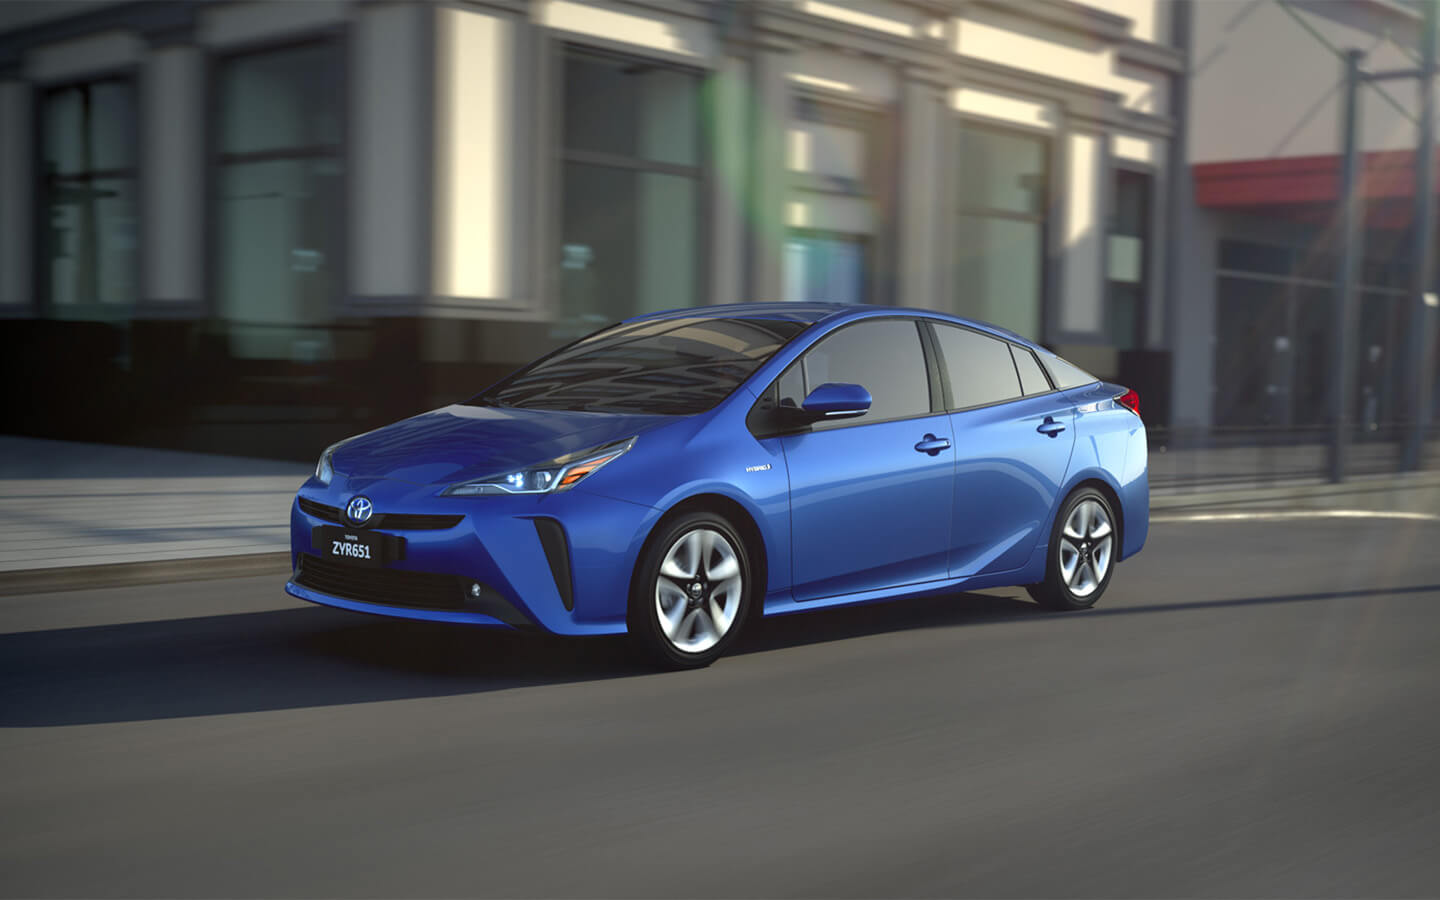 Toyota Prius We've got you covered